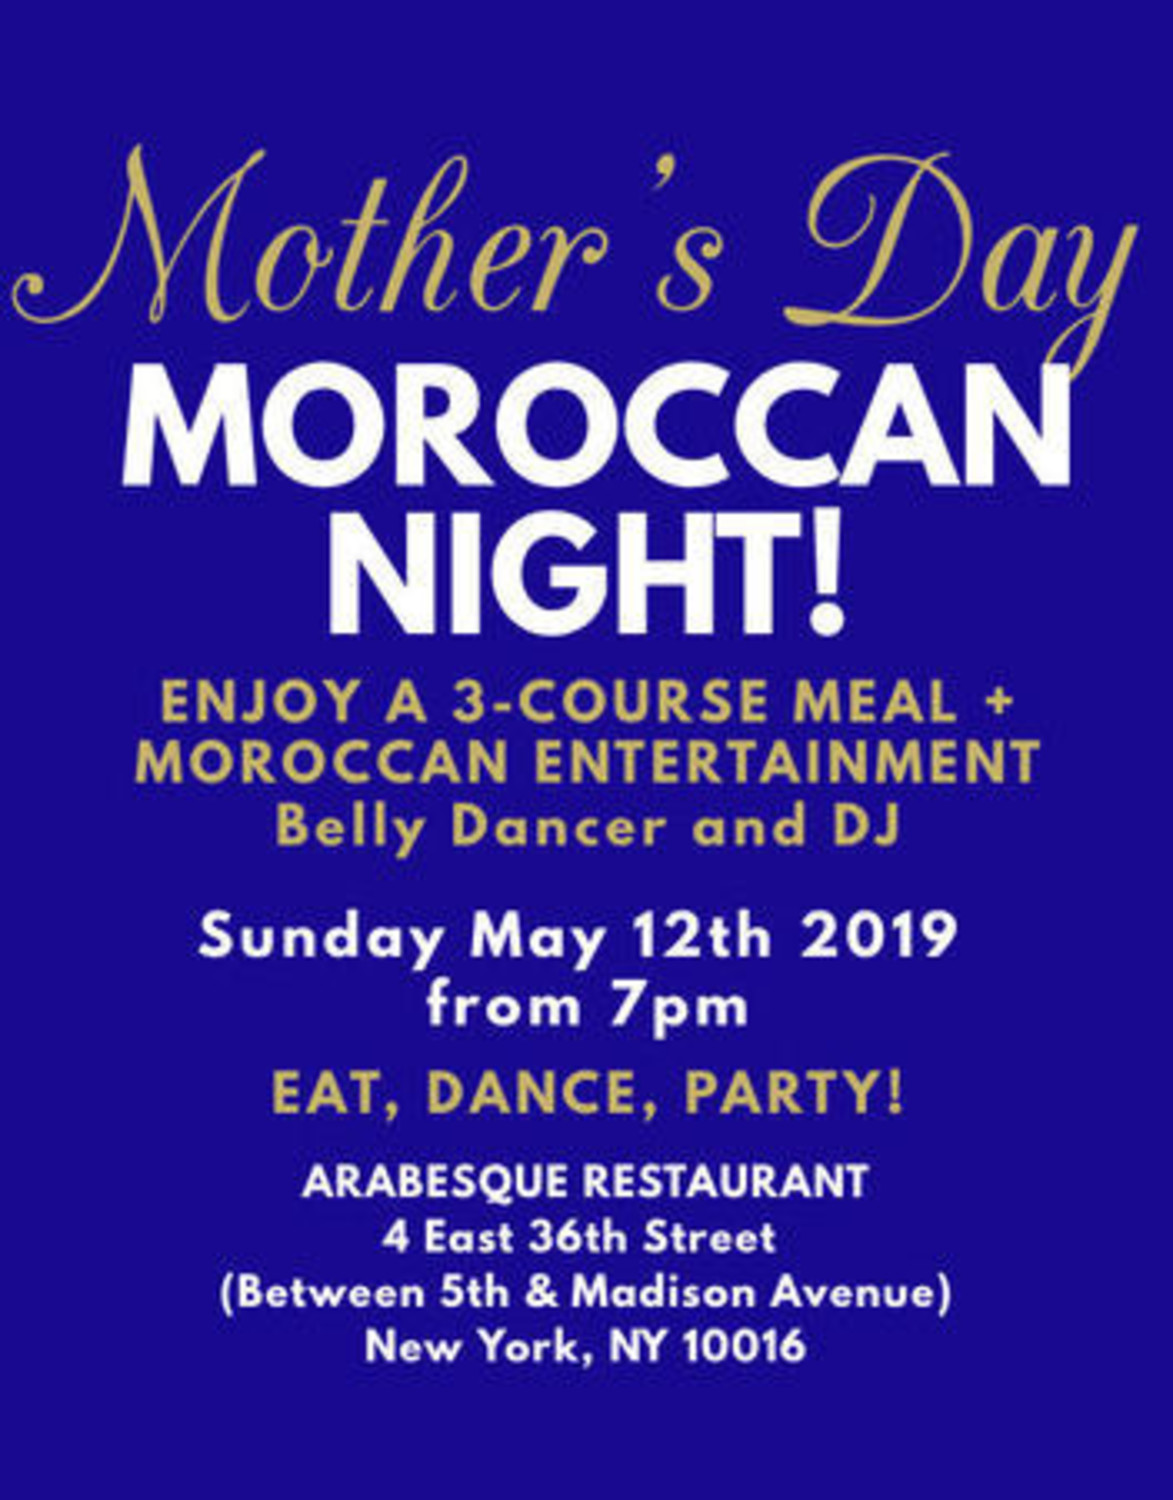 Mother's Day: 3-Course Dinner + Belly Dance Show! Tickets at